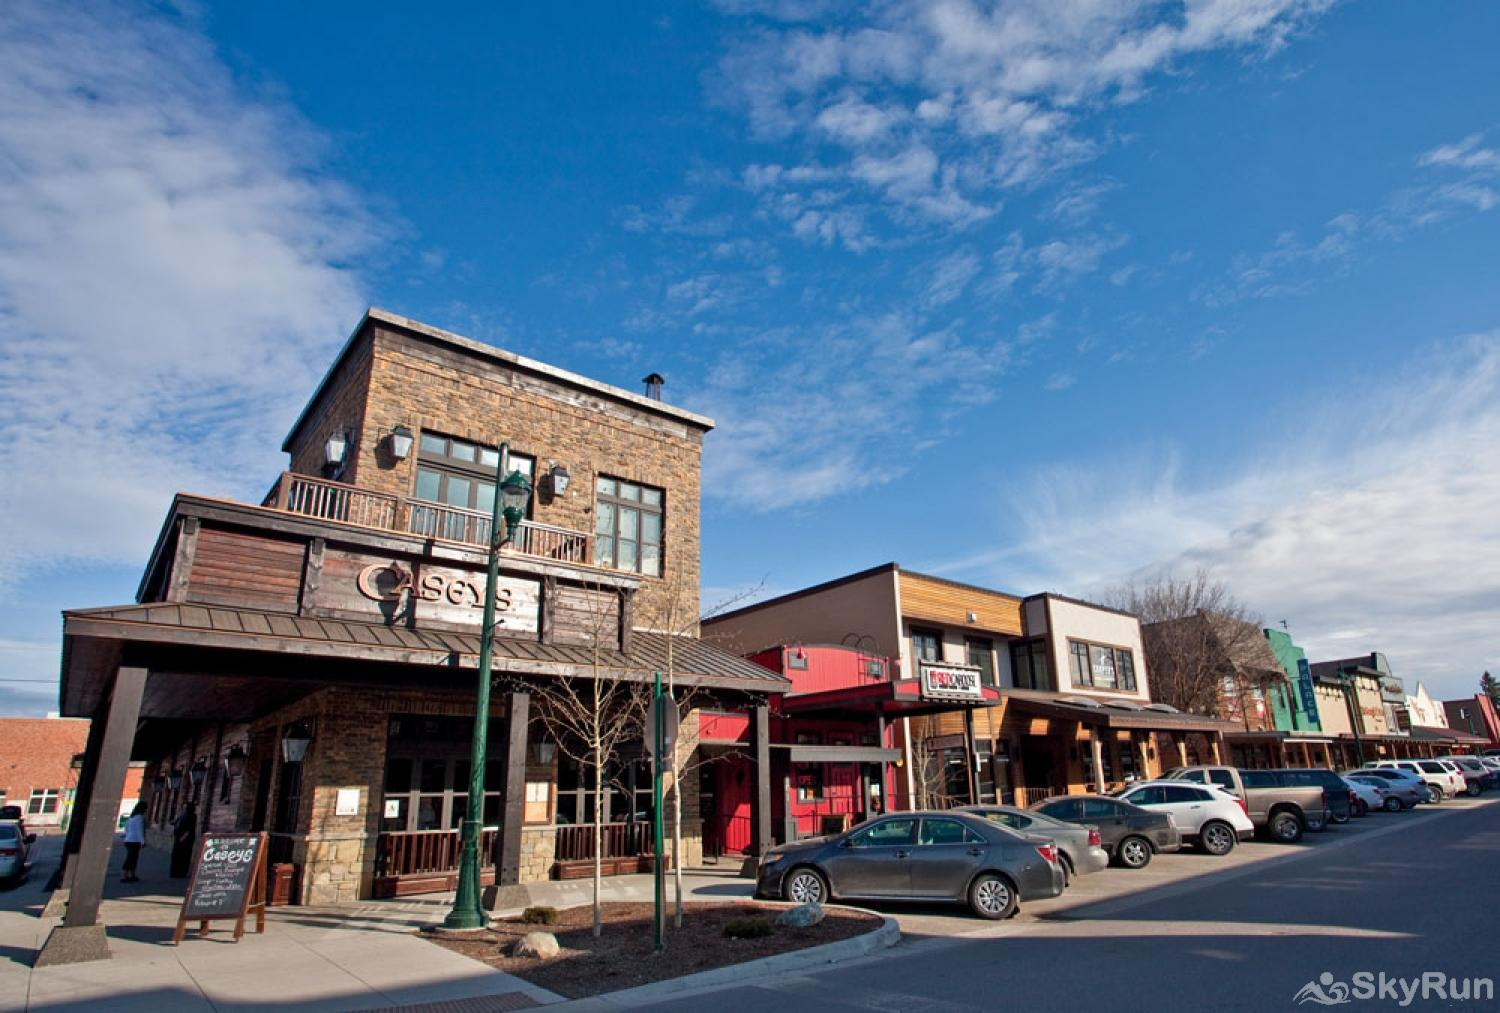 Whitefish River Inn There are great restaurants, coffee shops, breweries and shops galore.